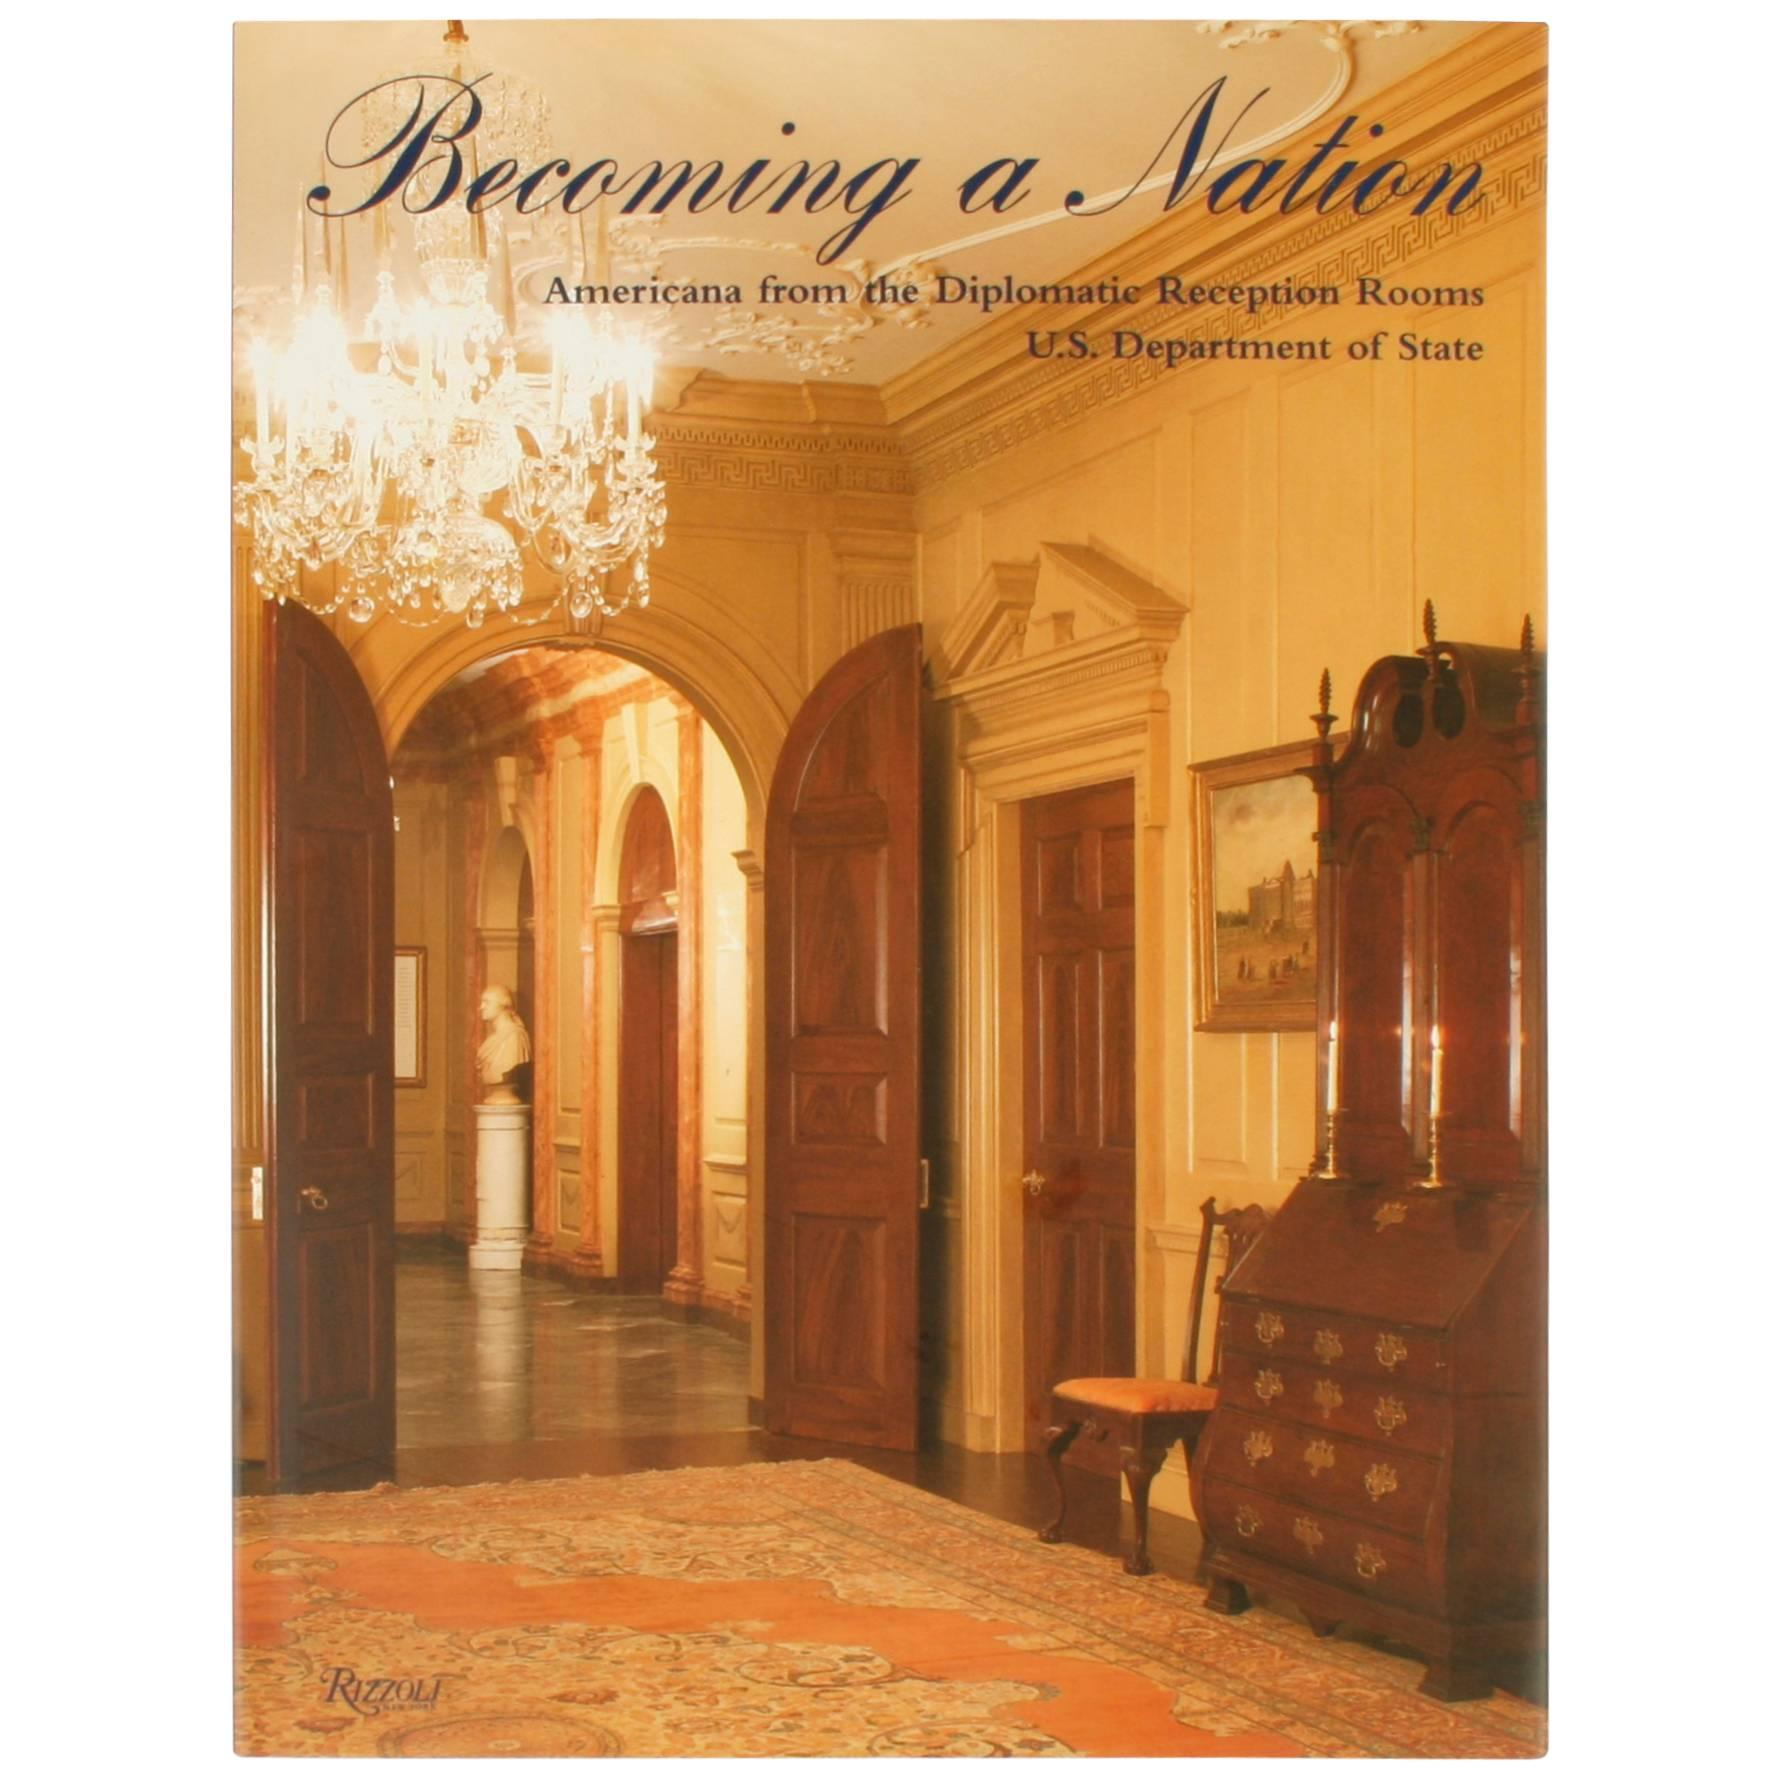 Becoming a Nation, Americana from the Diplomatic Reception Rooms, 1st Ed